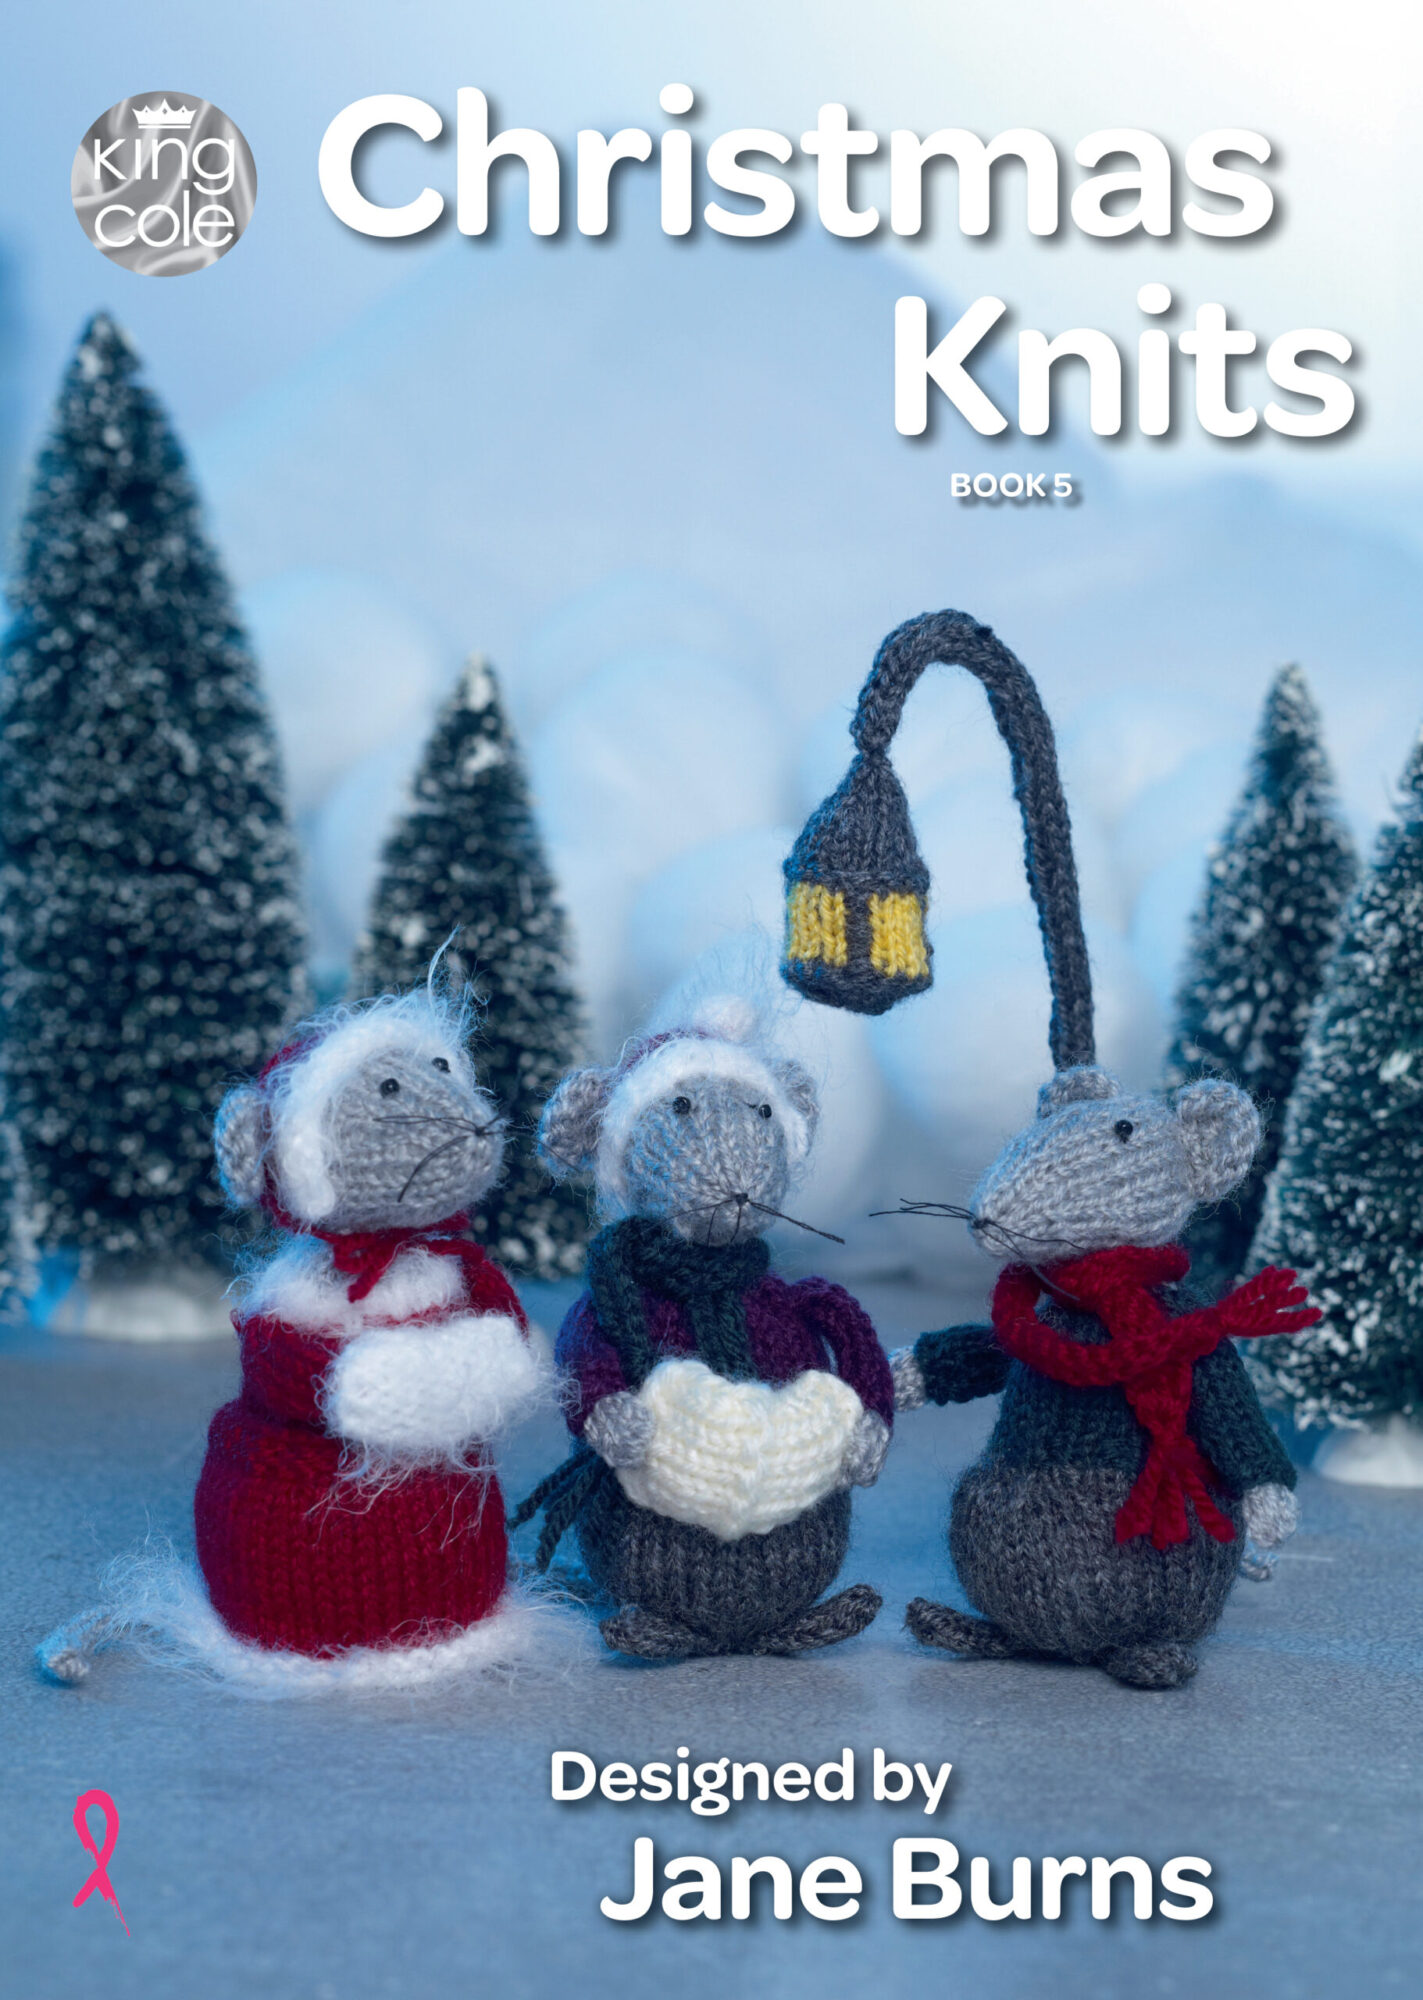 King Cole Christmas Knits – Book 5 product image